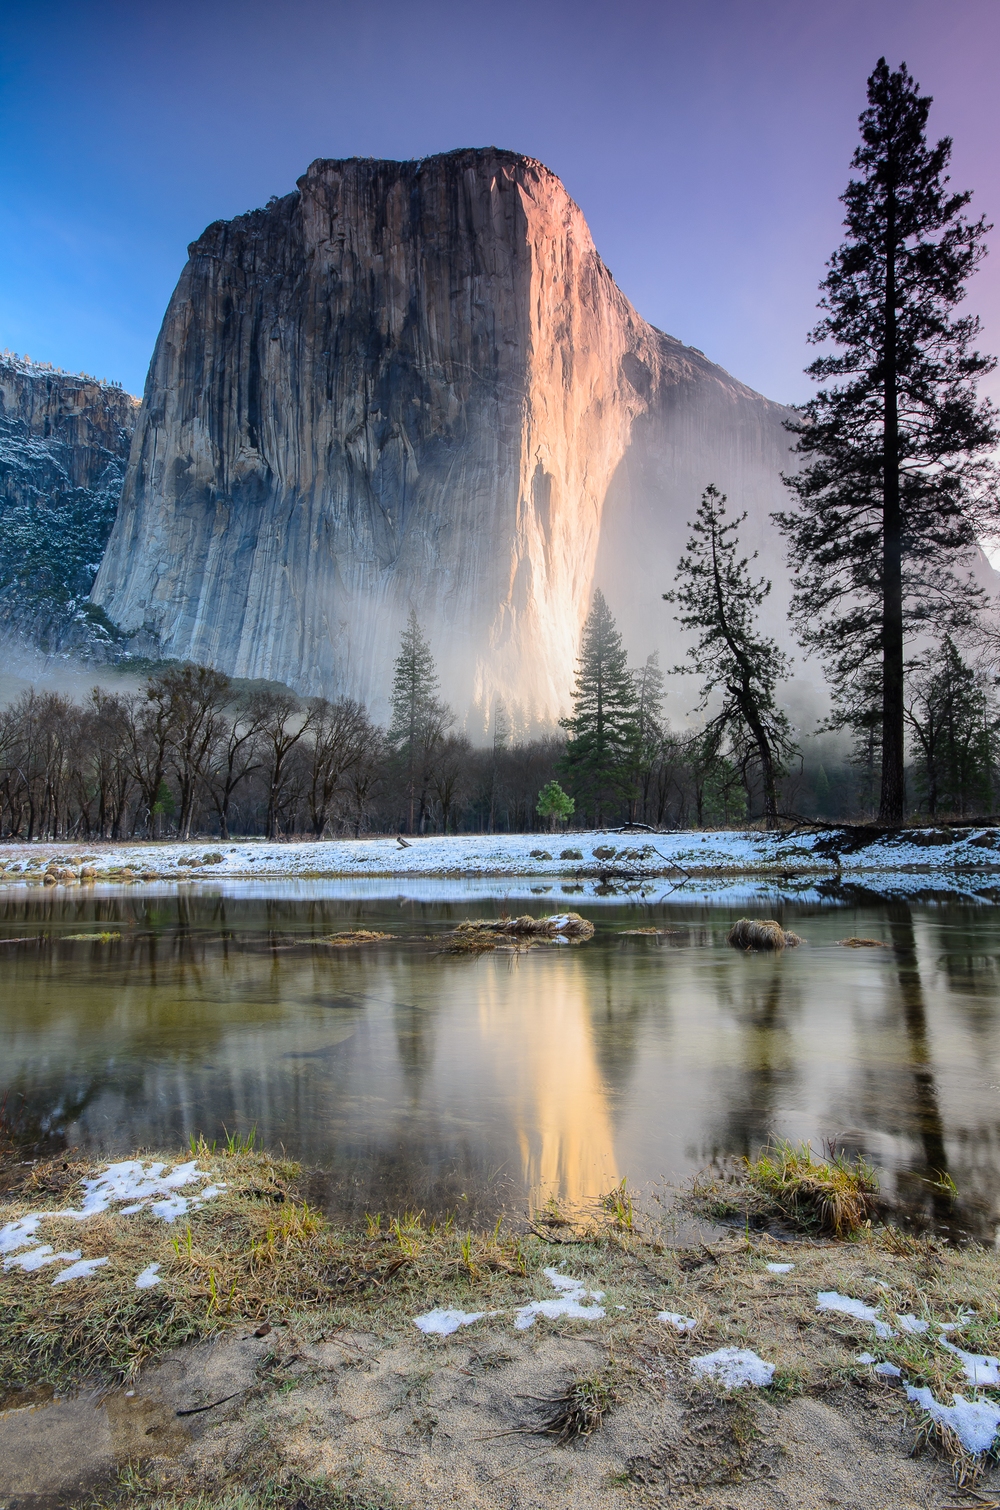 El Capitan catching the first rays of sunrise.